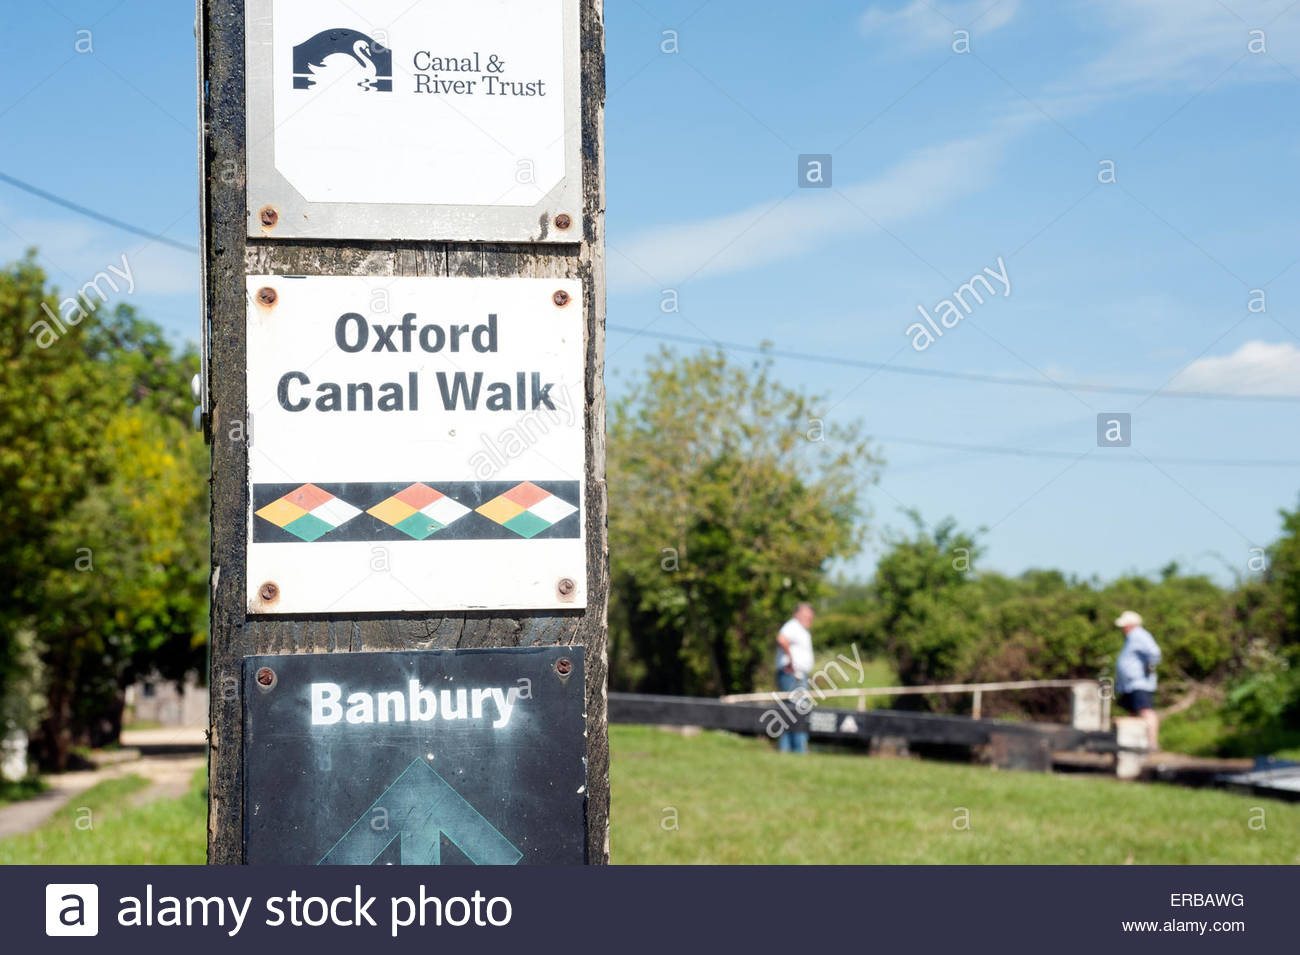 Oxfordshire UK. Oxford Canal walk. - Stock Image